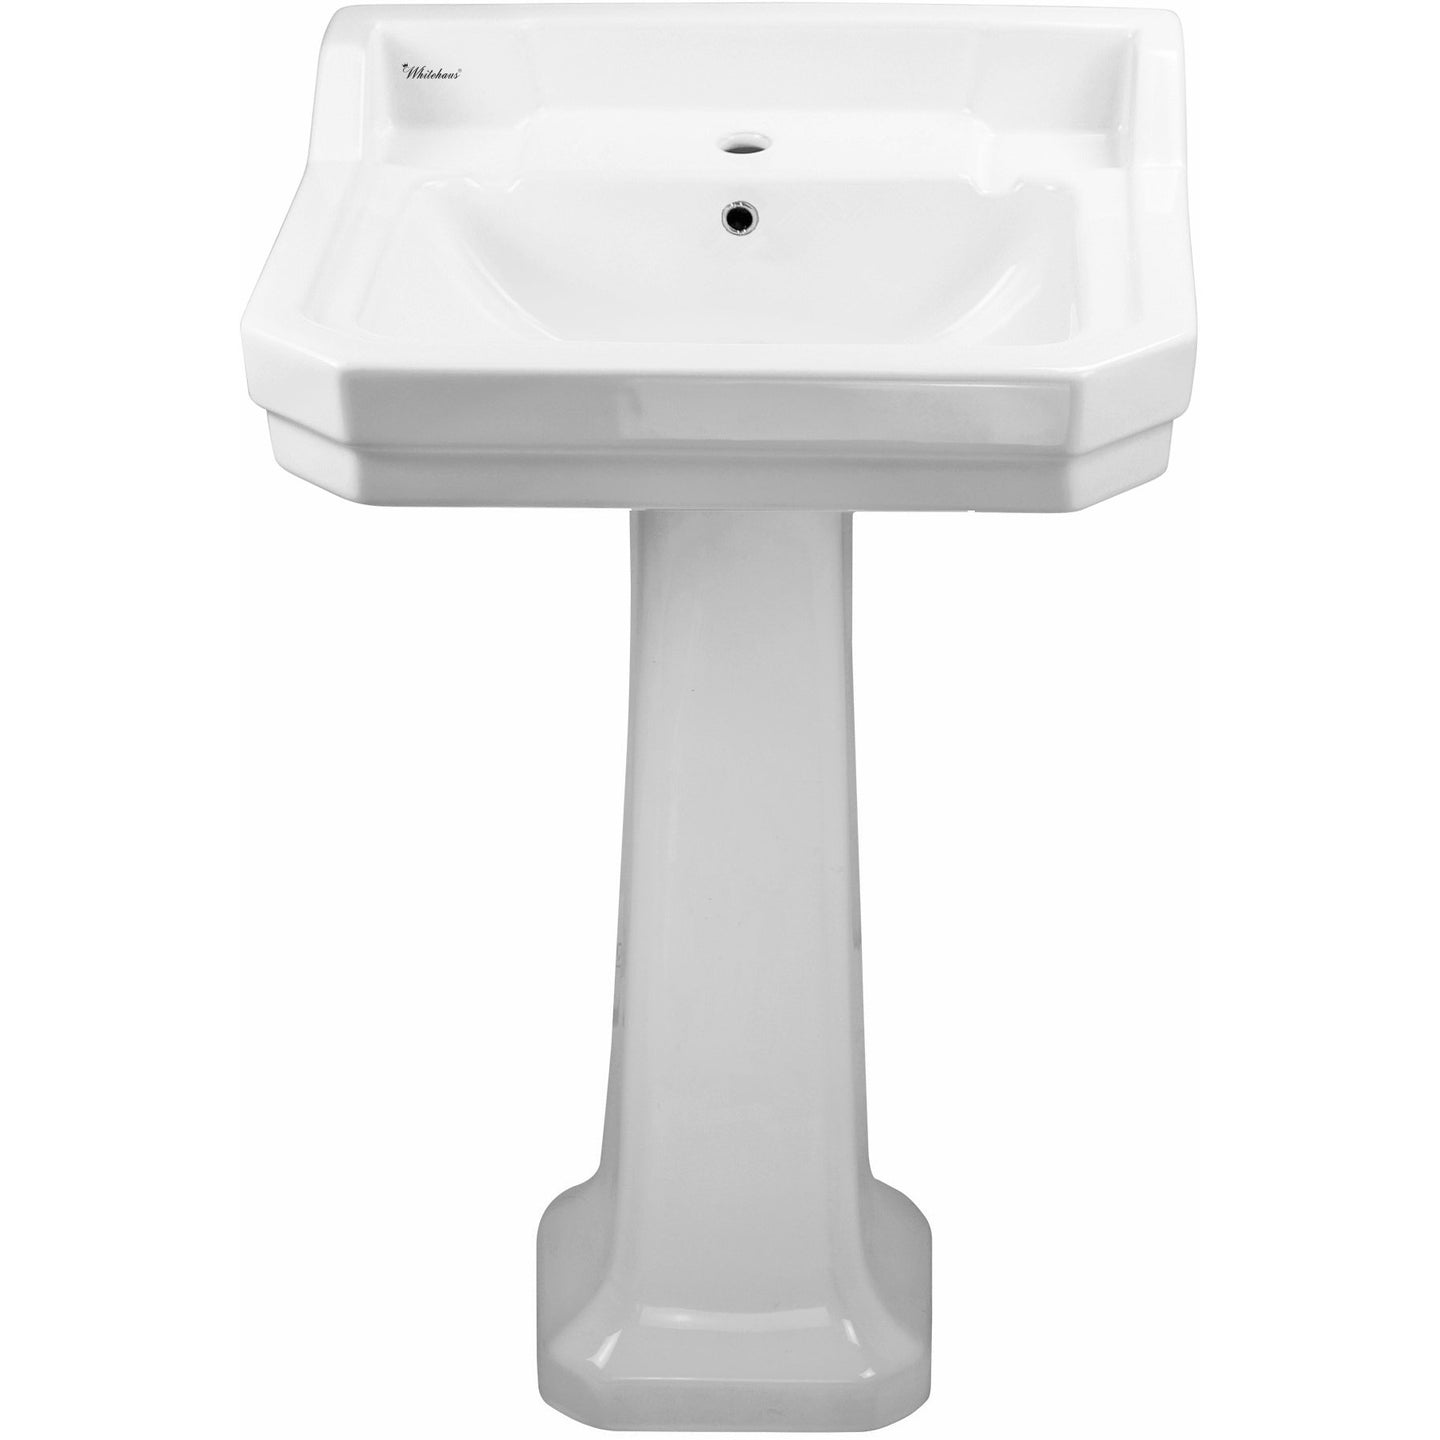 Whitehaus Isabella Collection Traditional Pedestal with Integrated Rectangular Bowl, Backsplash, Dual Soap Ledges, Decorative Trim and Overflow